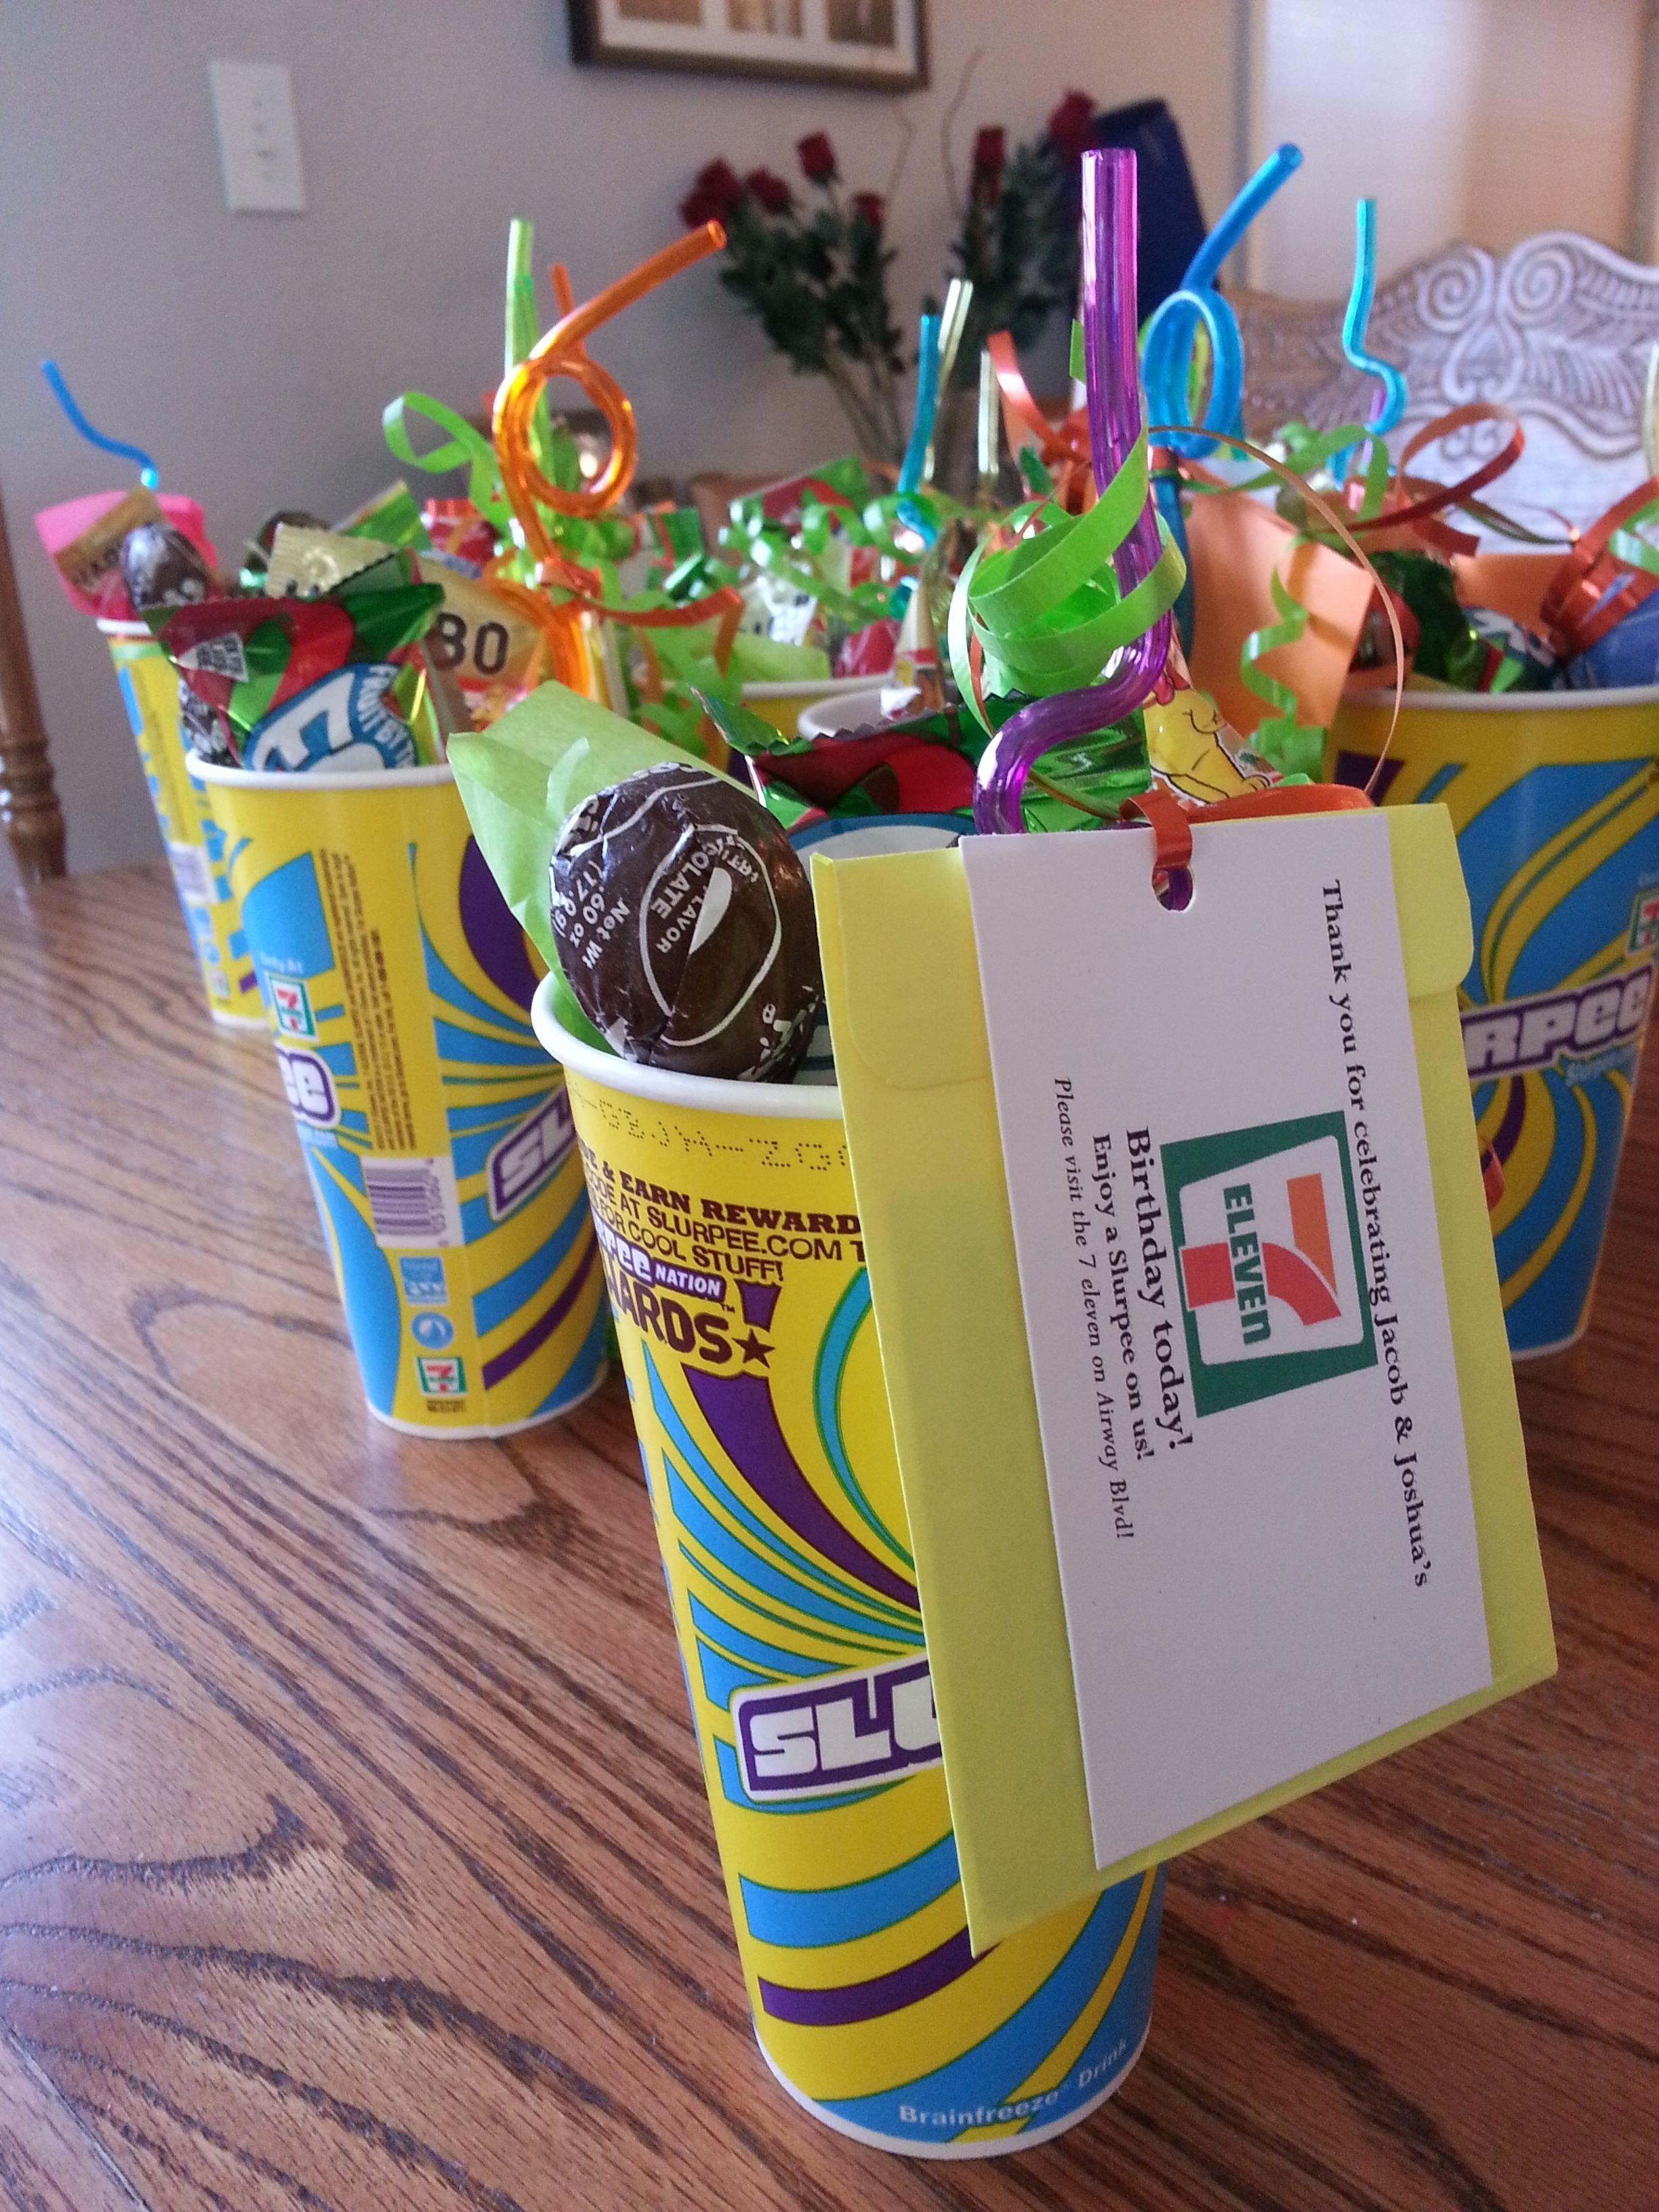 10 Gorgeous 7 Yr Old Birthday Party Ideas my boys turned 7 and 11 years old and their birthdays are very close 7 2020